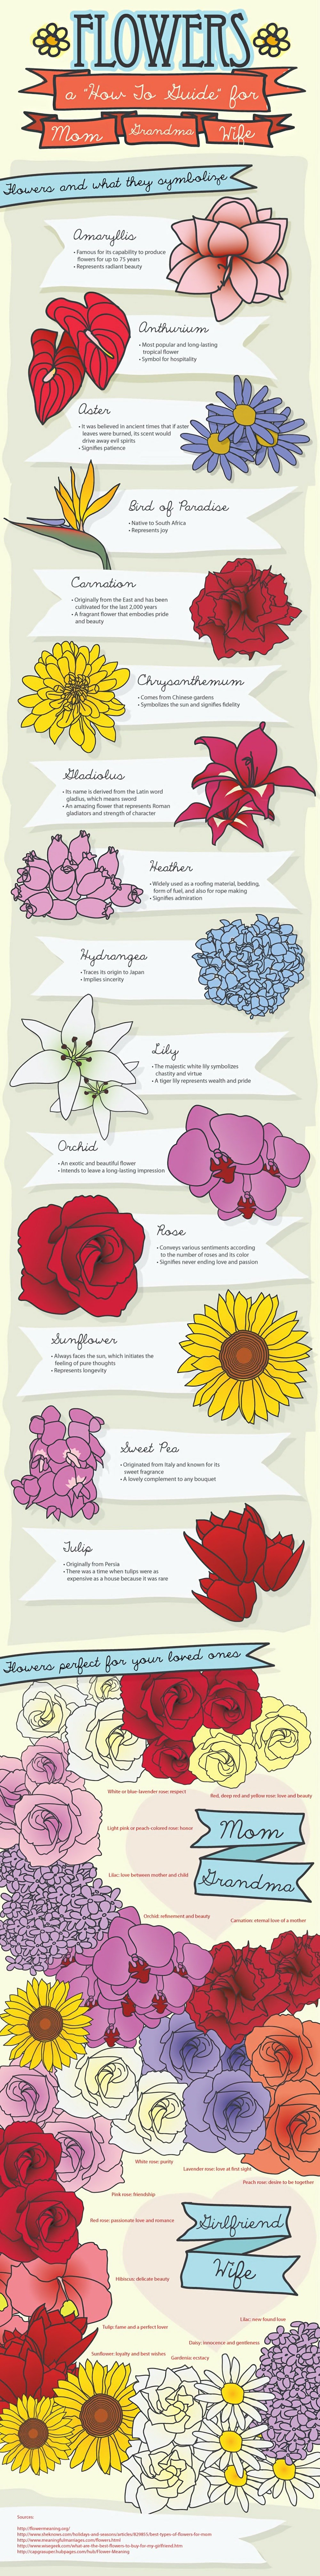 Occasion Flowers - Choosing the Right Flower for the Right Occasion